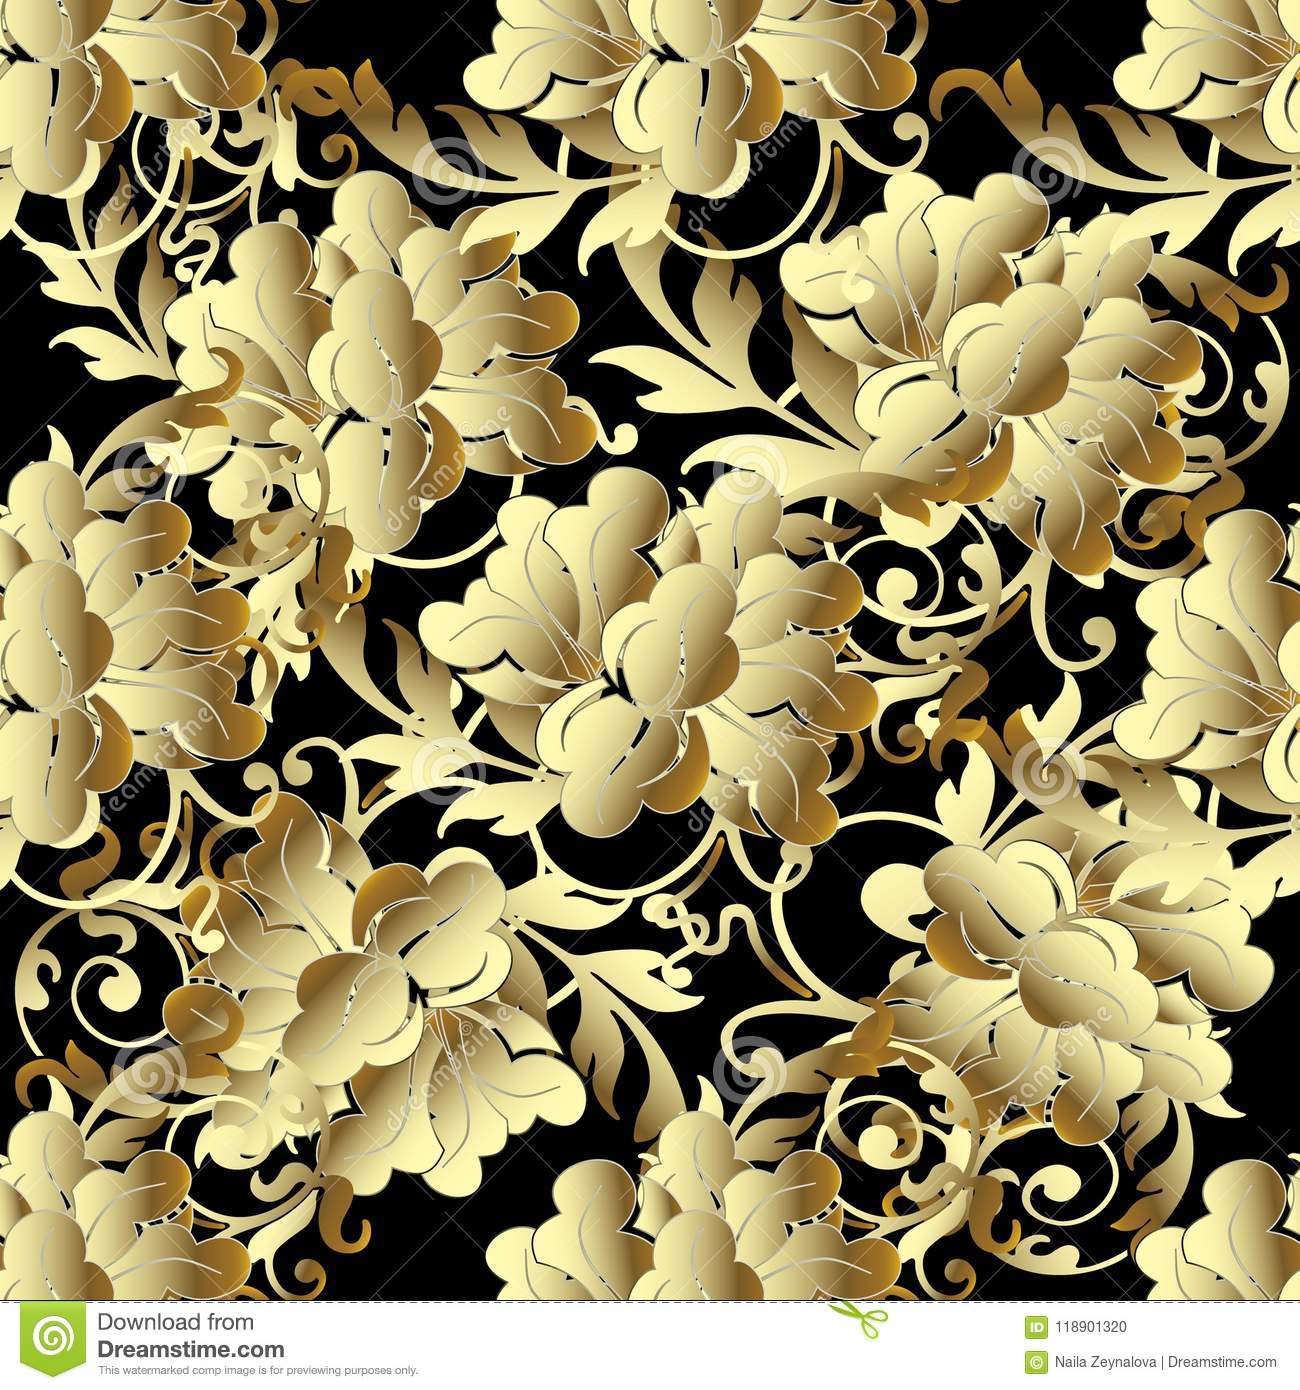 Baroque Gold 3d flowers seamless pattern.